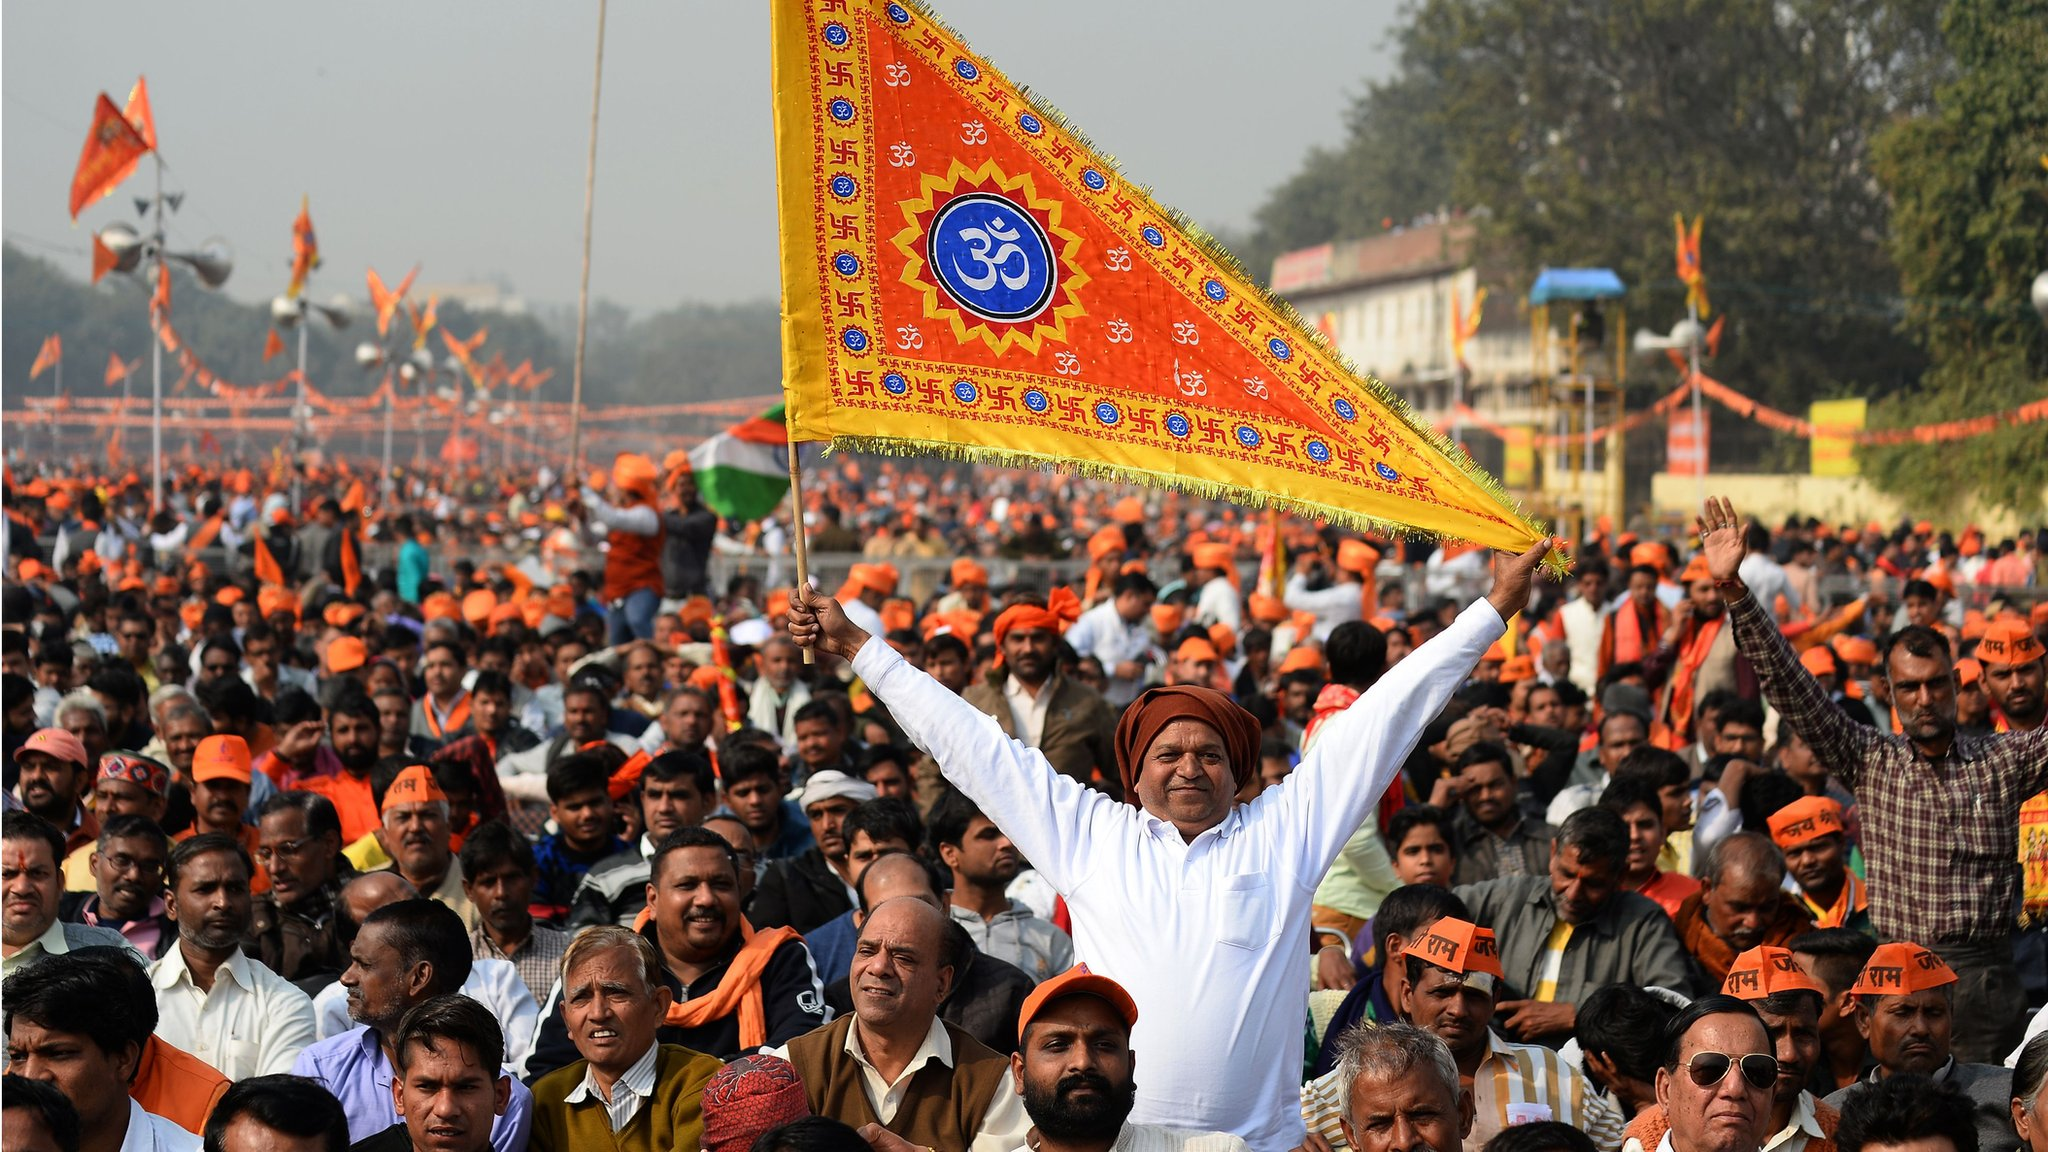 Ayodhya: Thousands rally in Delhi over disputed religious site